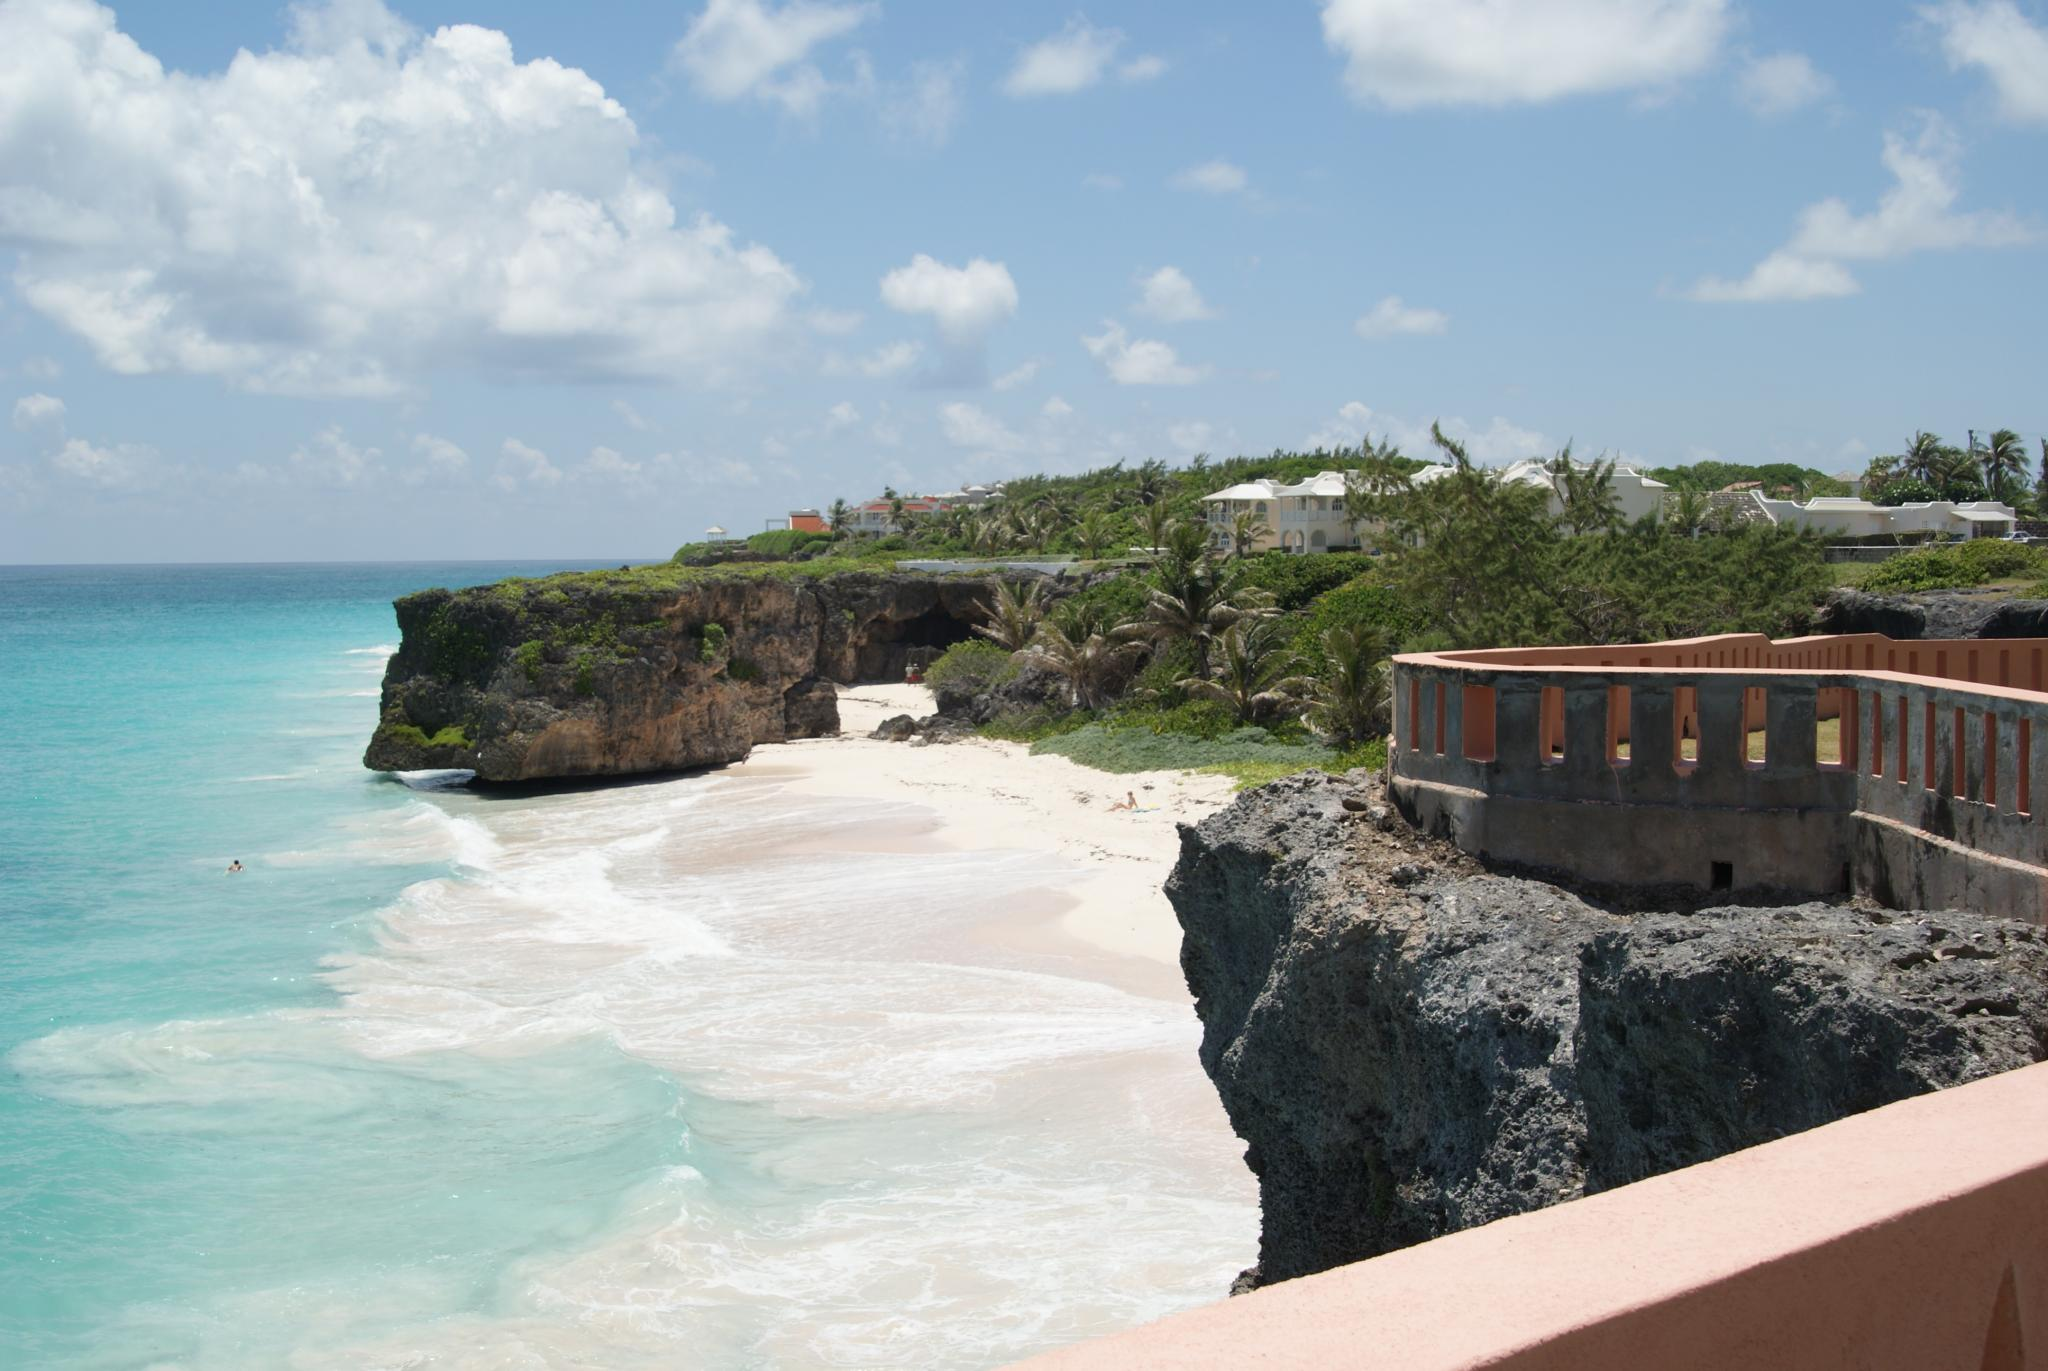 Beachy Head Ronald Stoute Amp Sons Ltd Barbados Villa